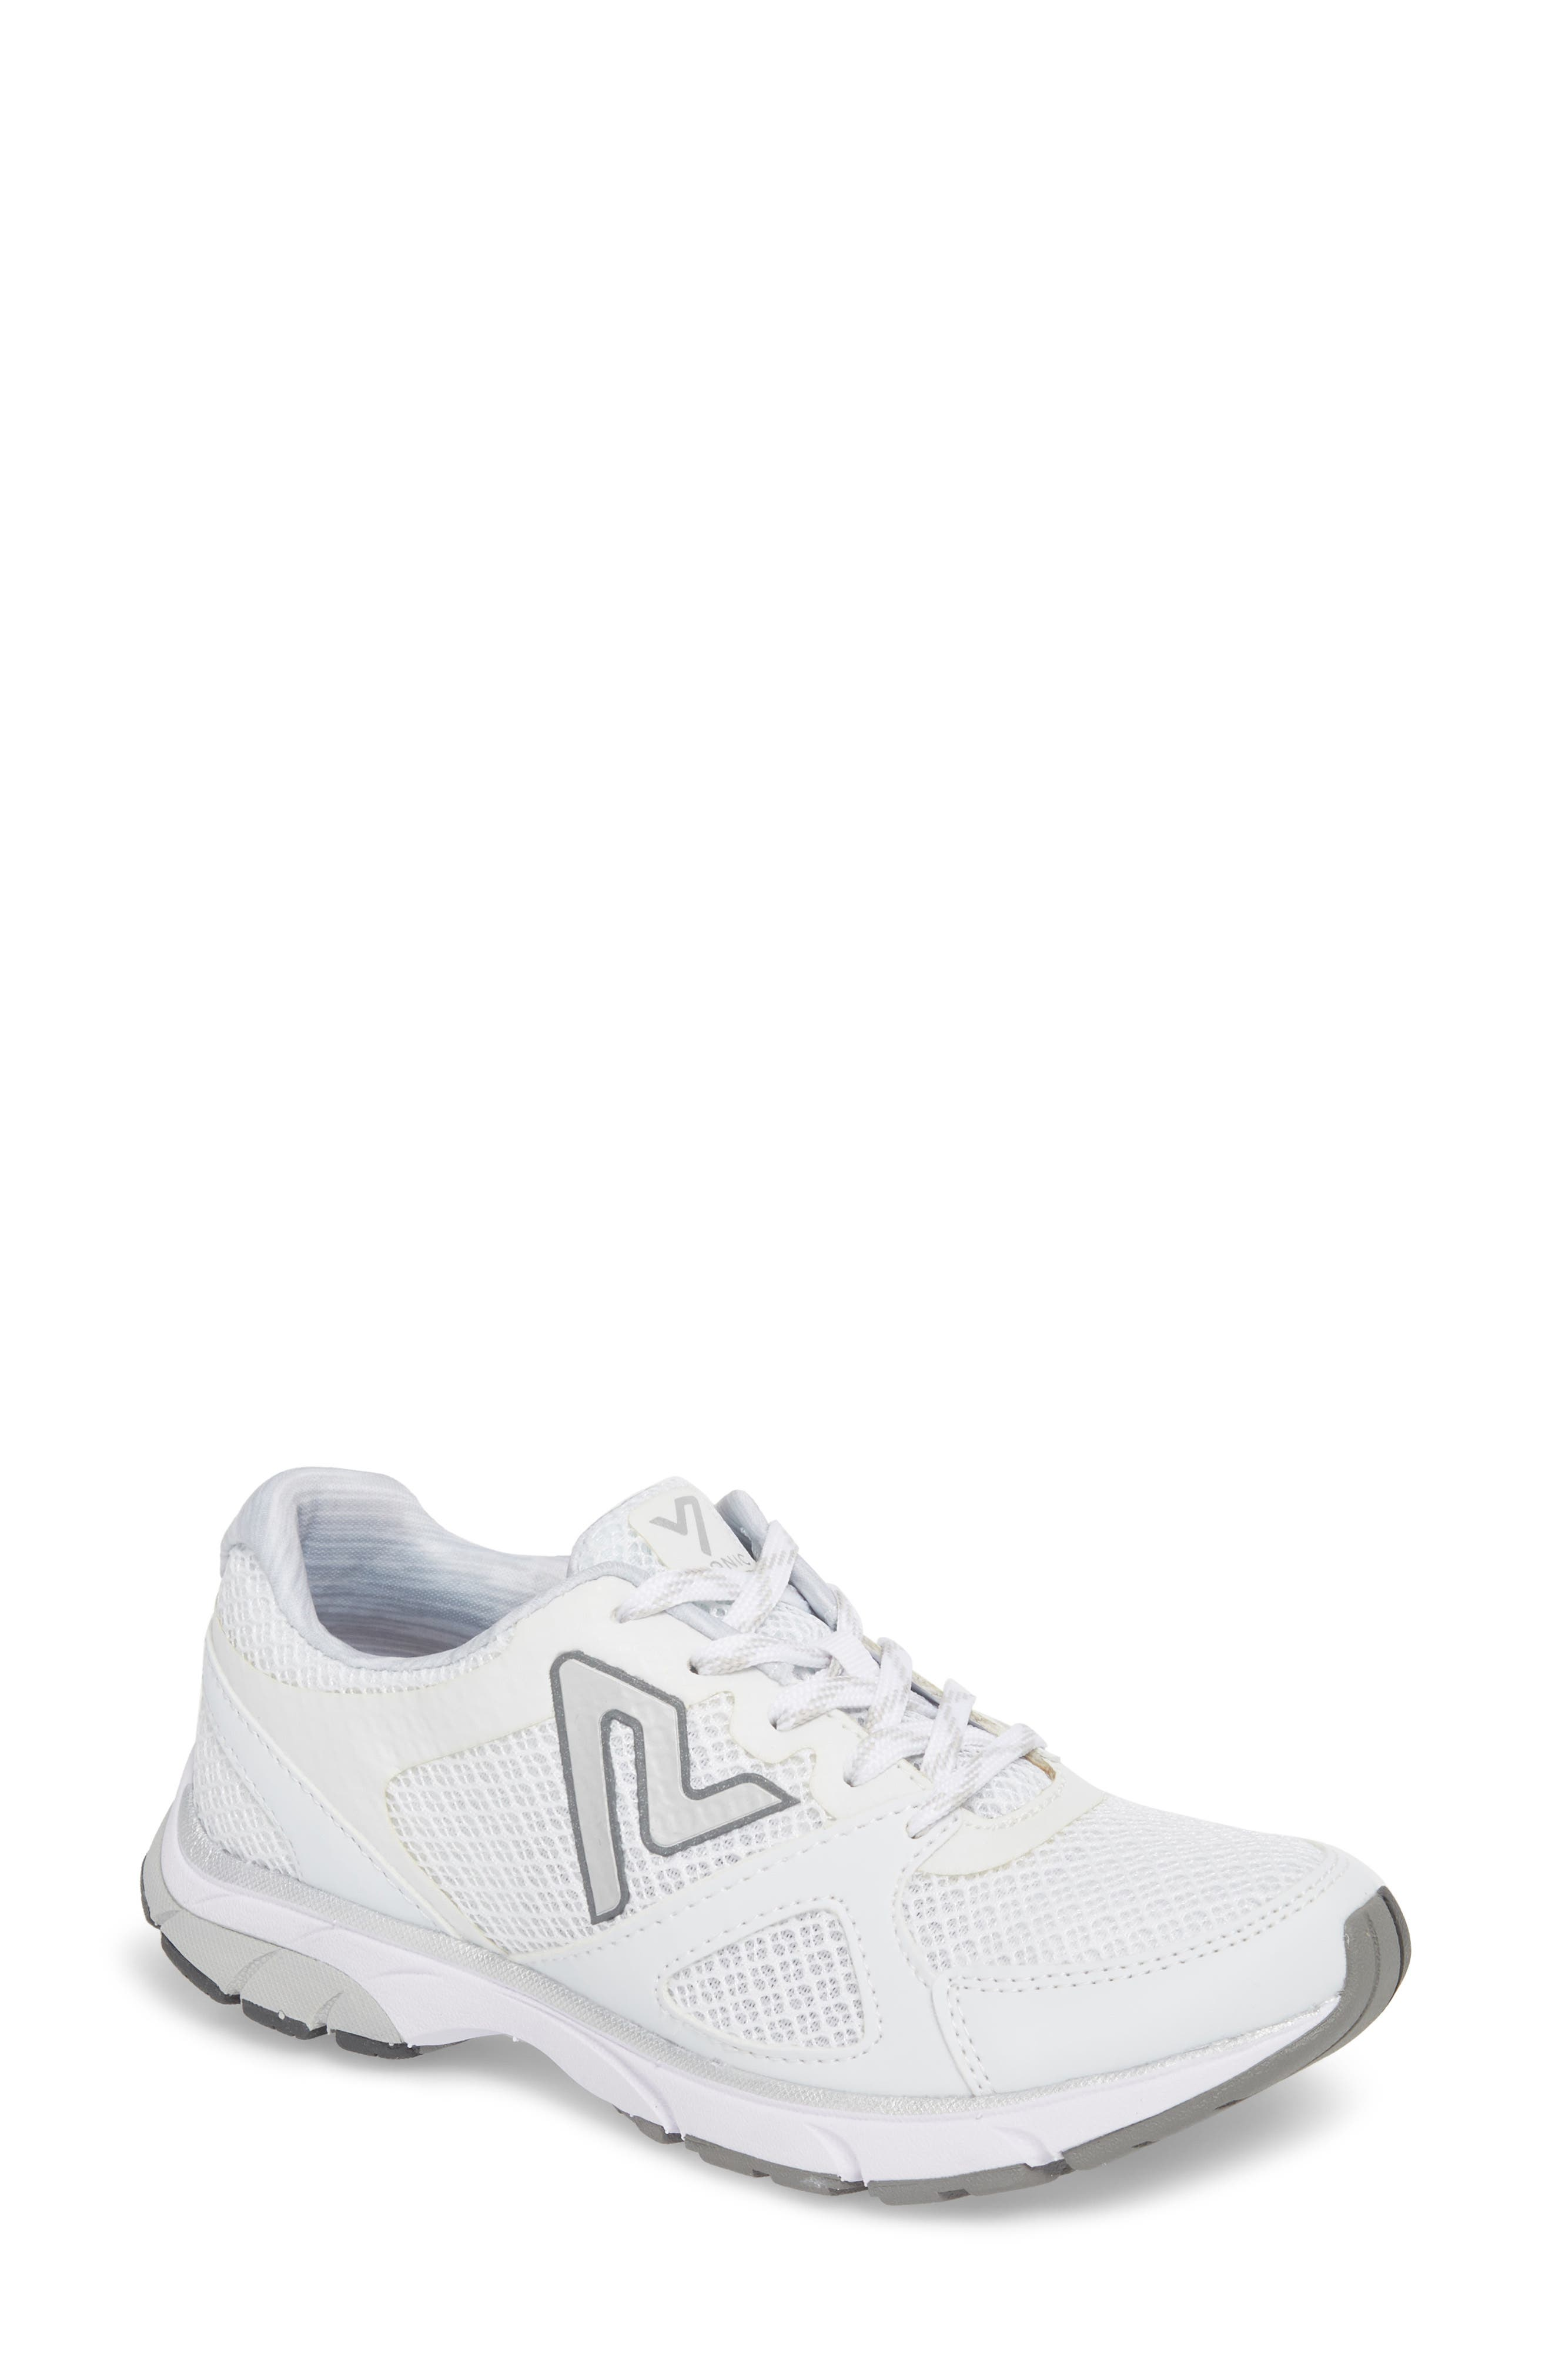 fila shoes timidly antonym worksheets with pictures